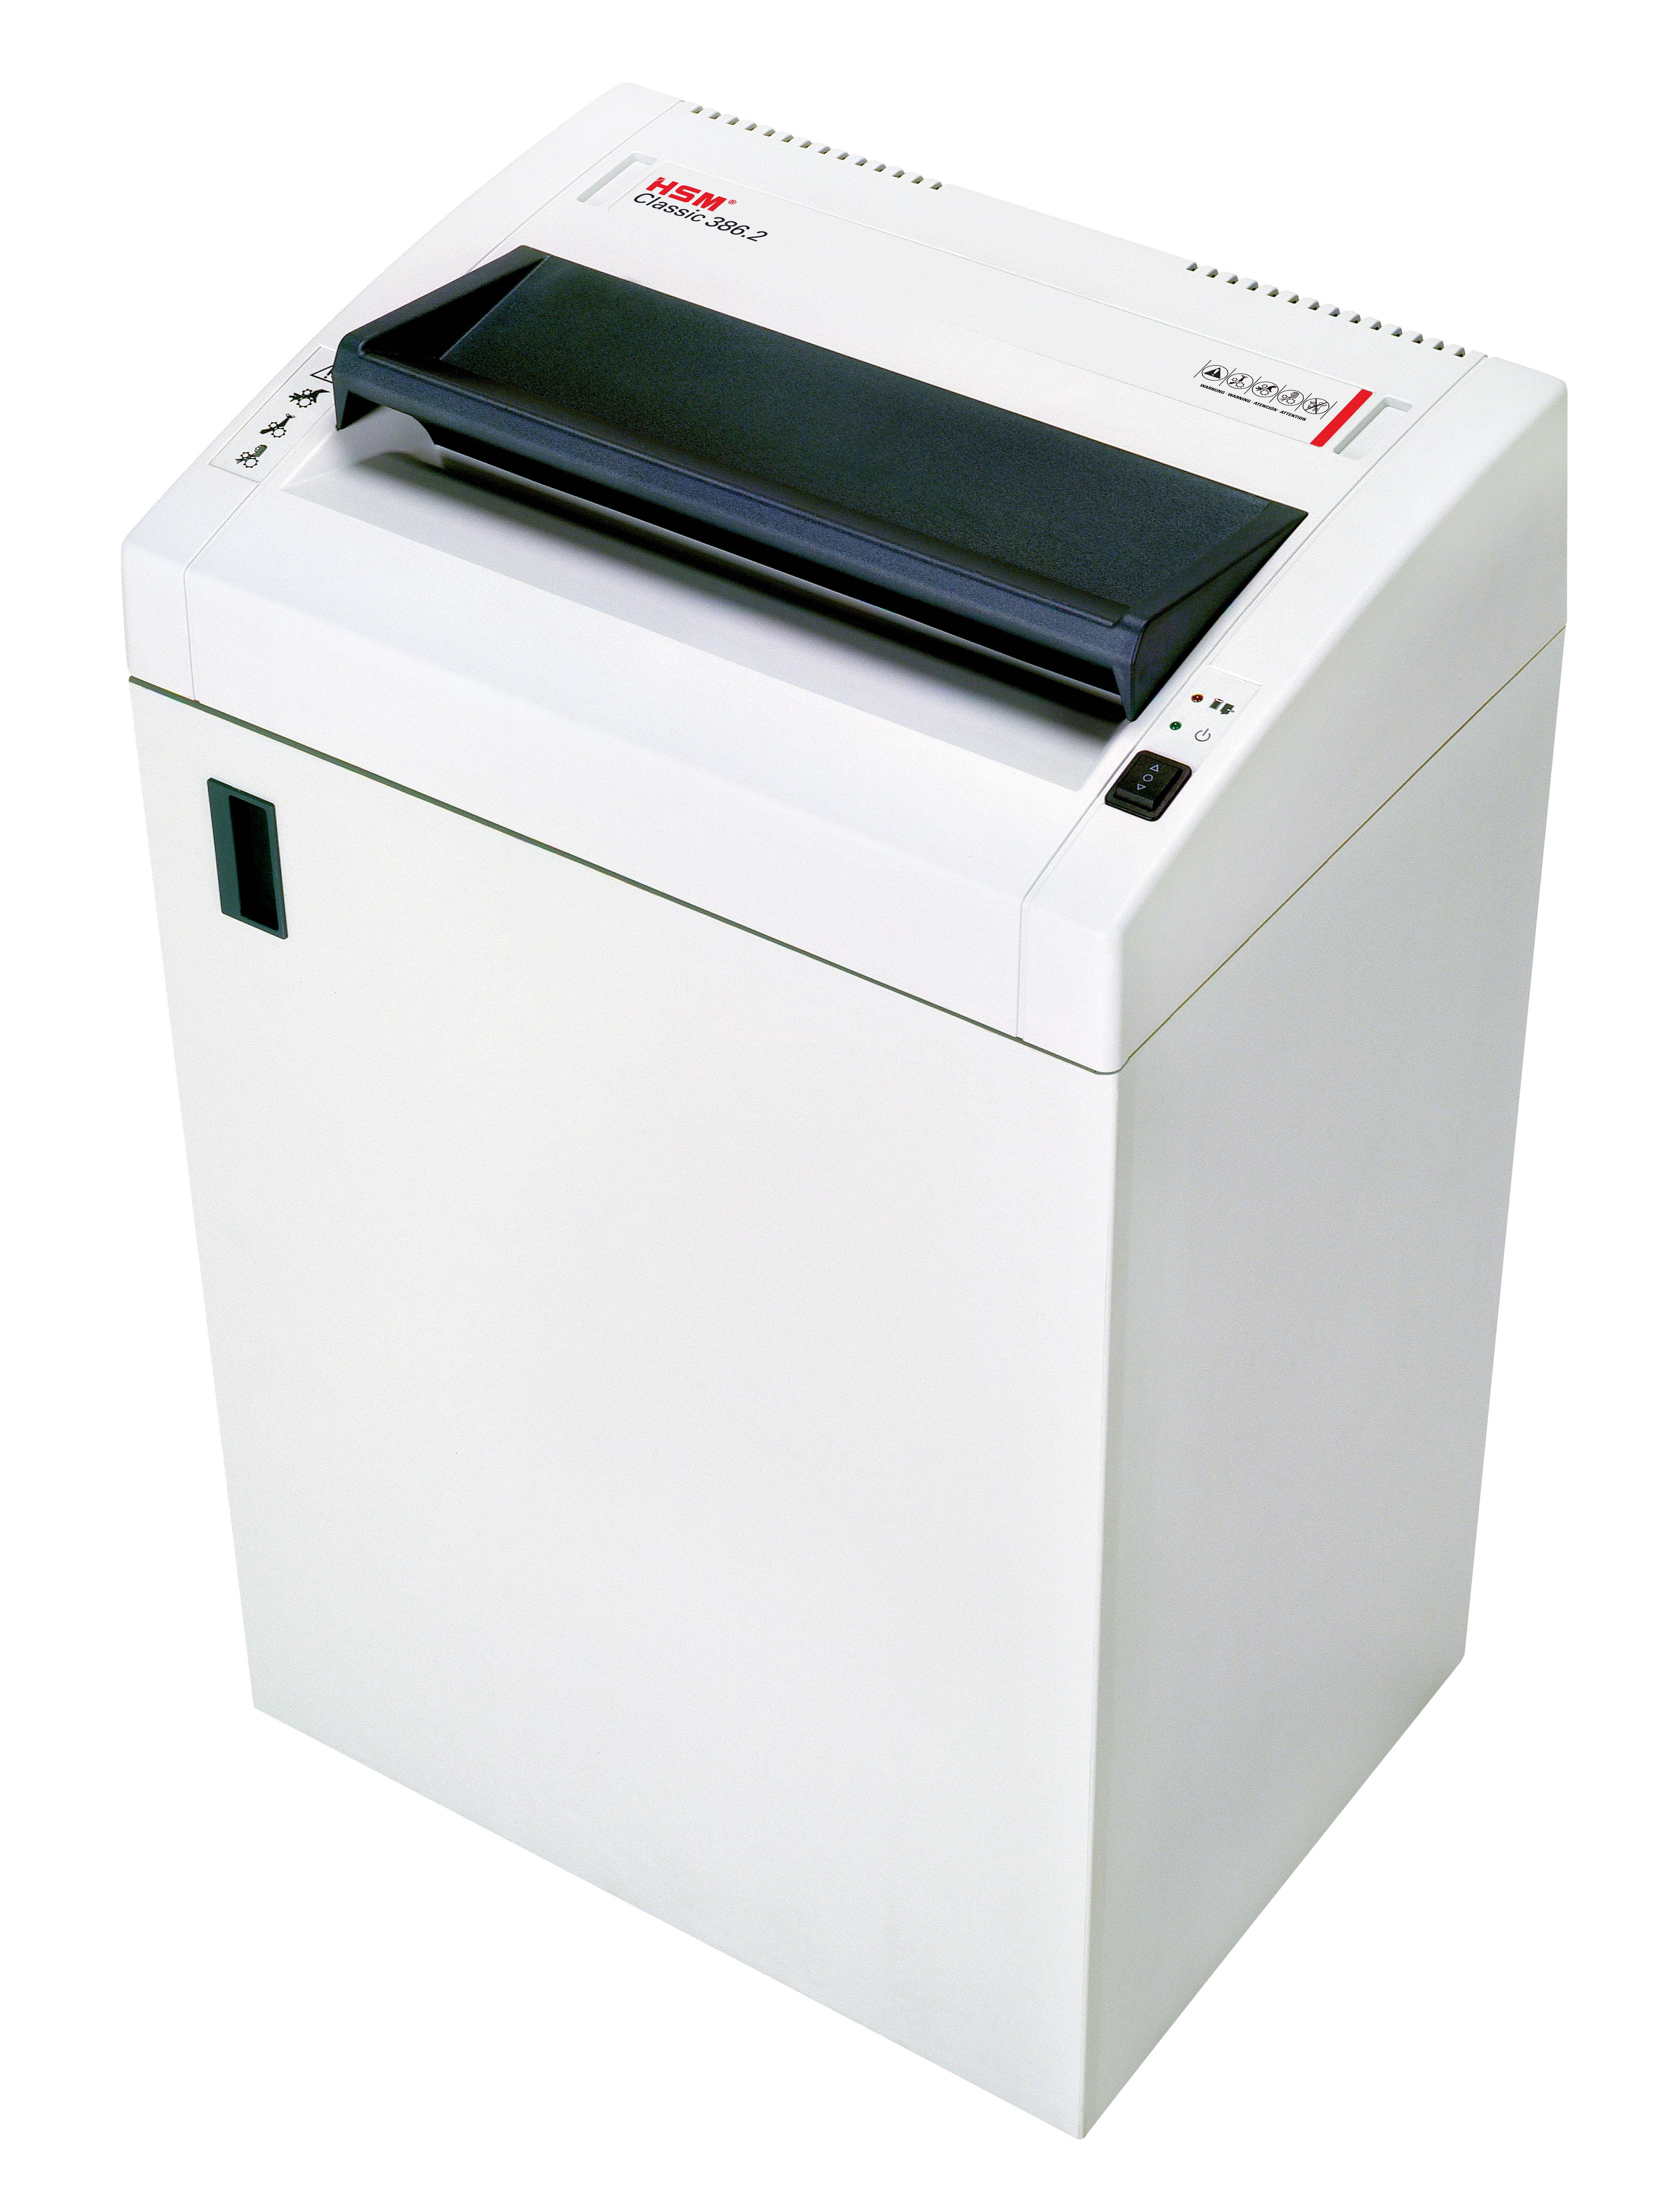 Shredder Paper Shredder Heavy Duty Paper Shredder